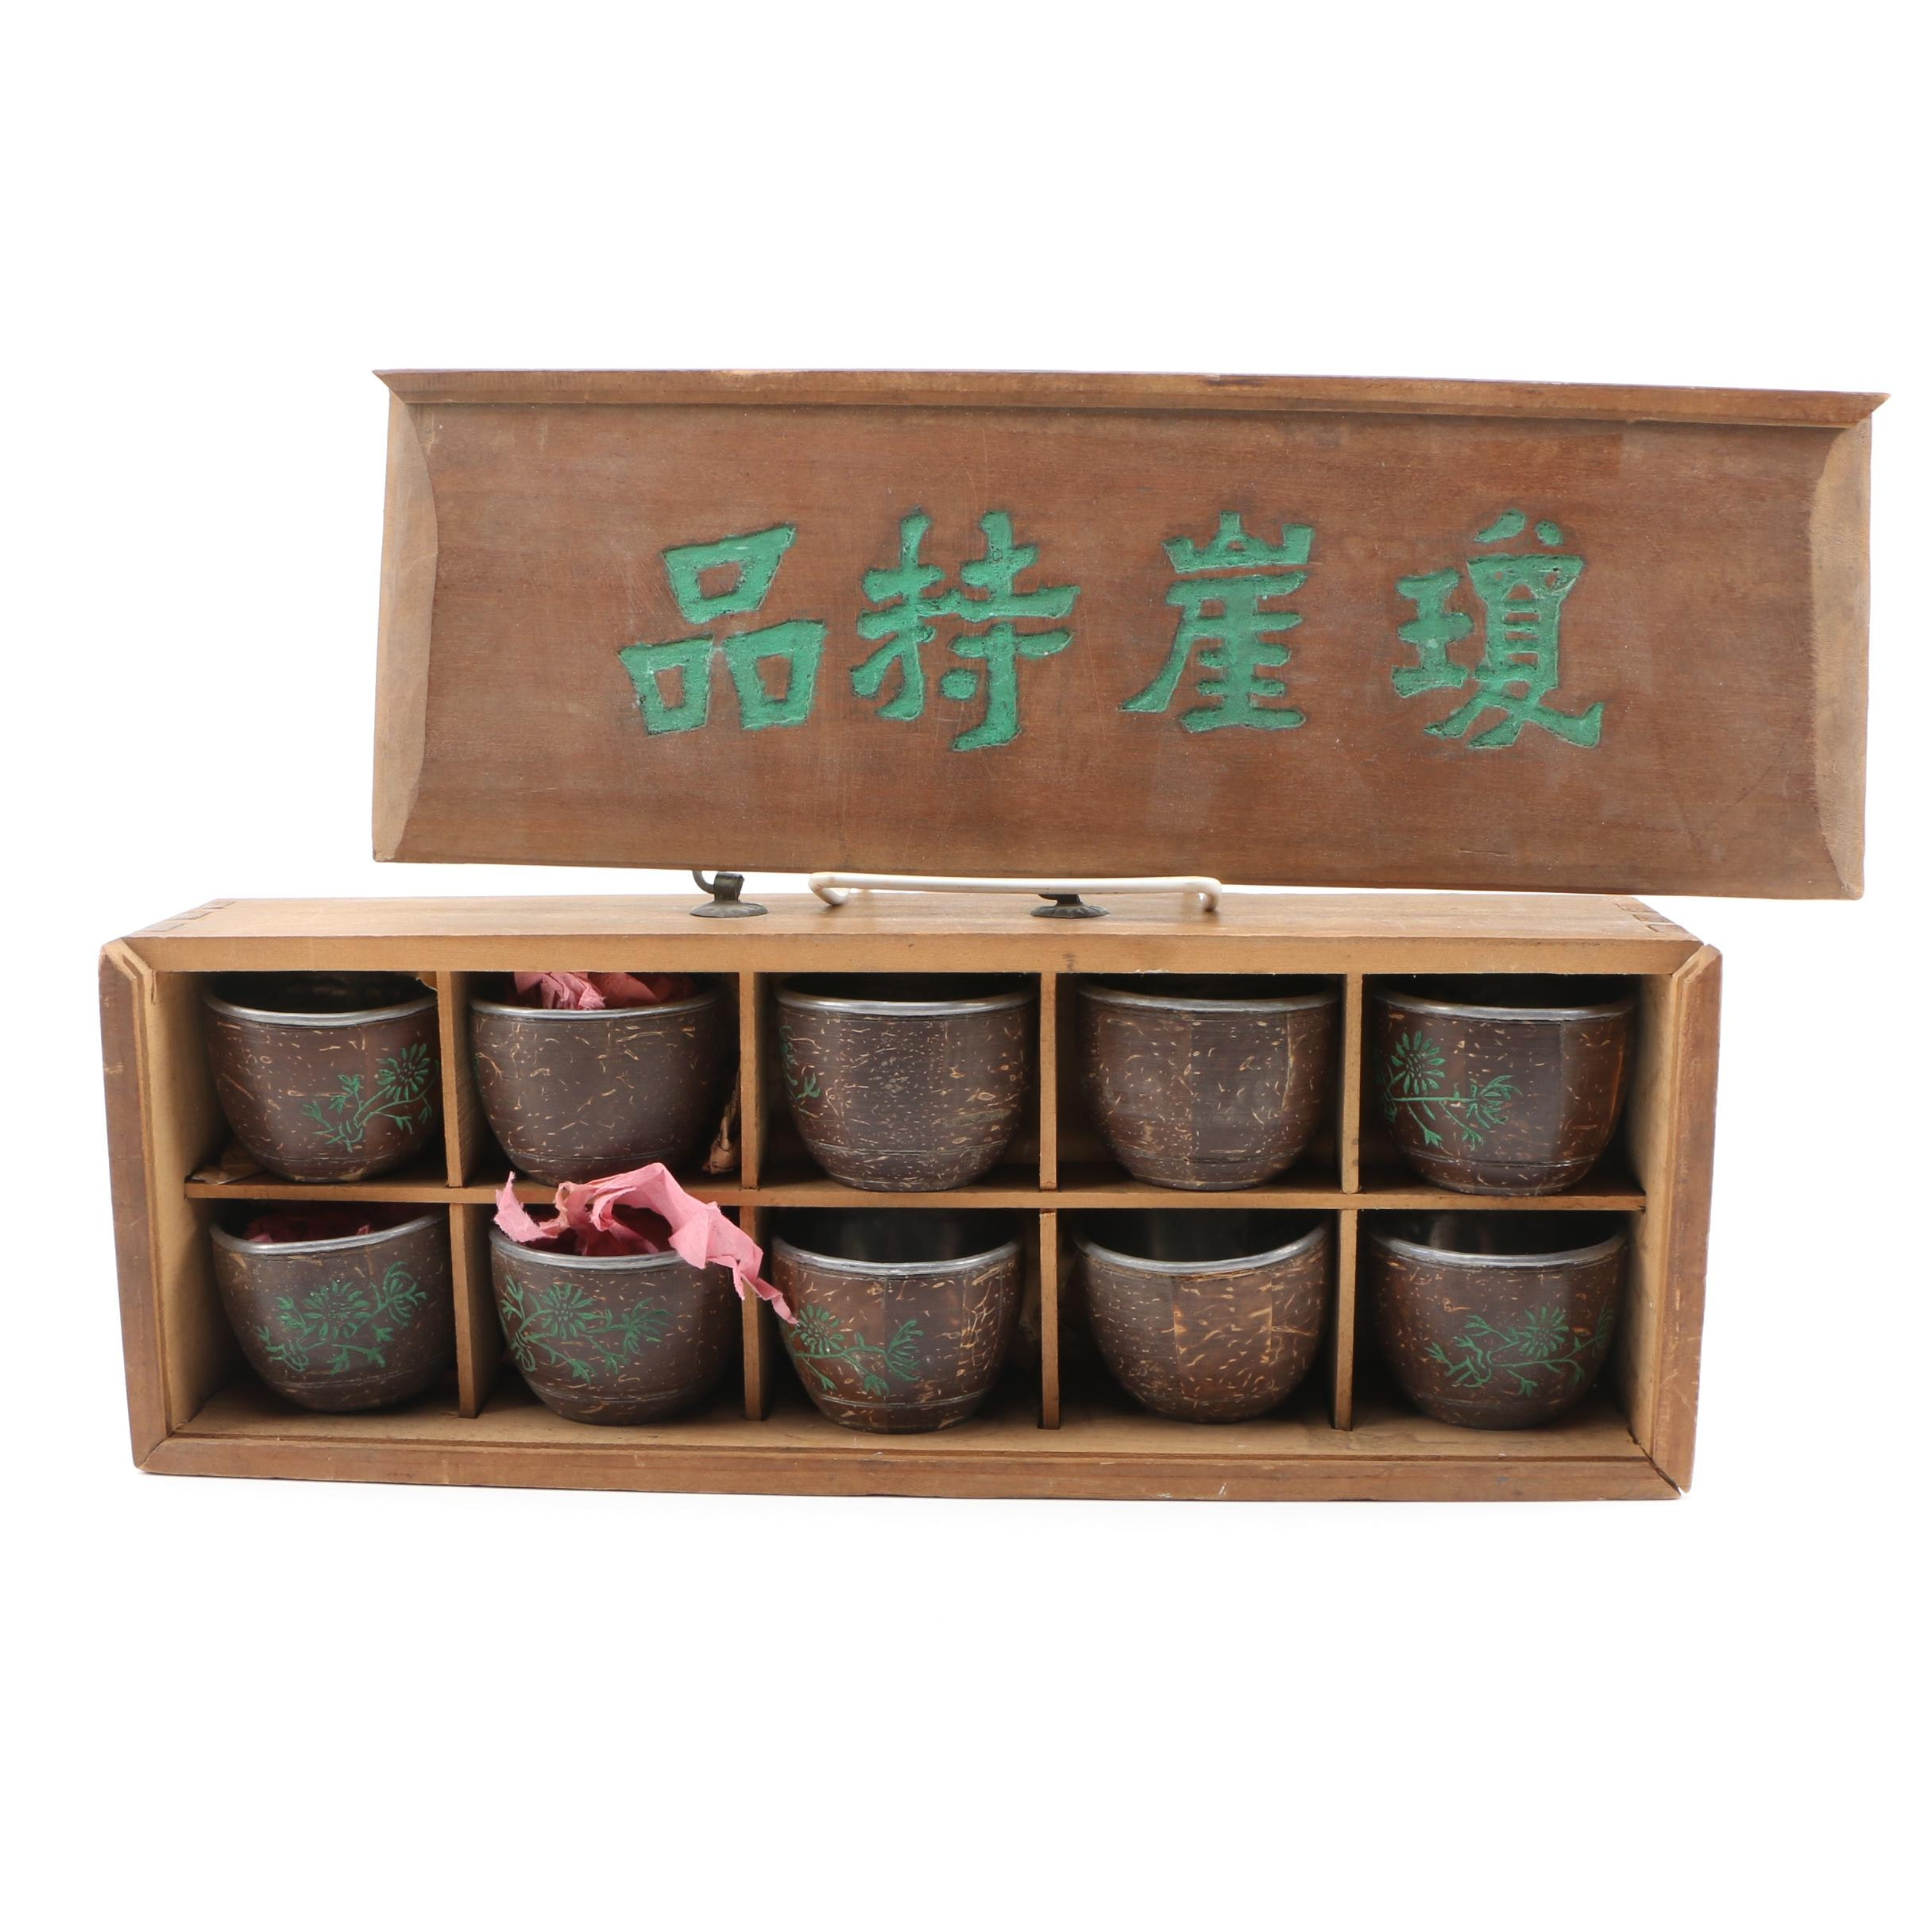 East Asian Coconut Shell Cups in Wood Crate